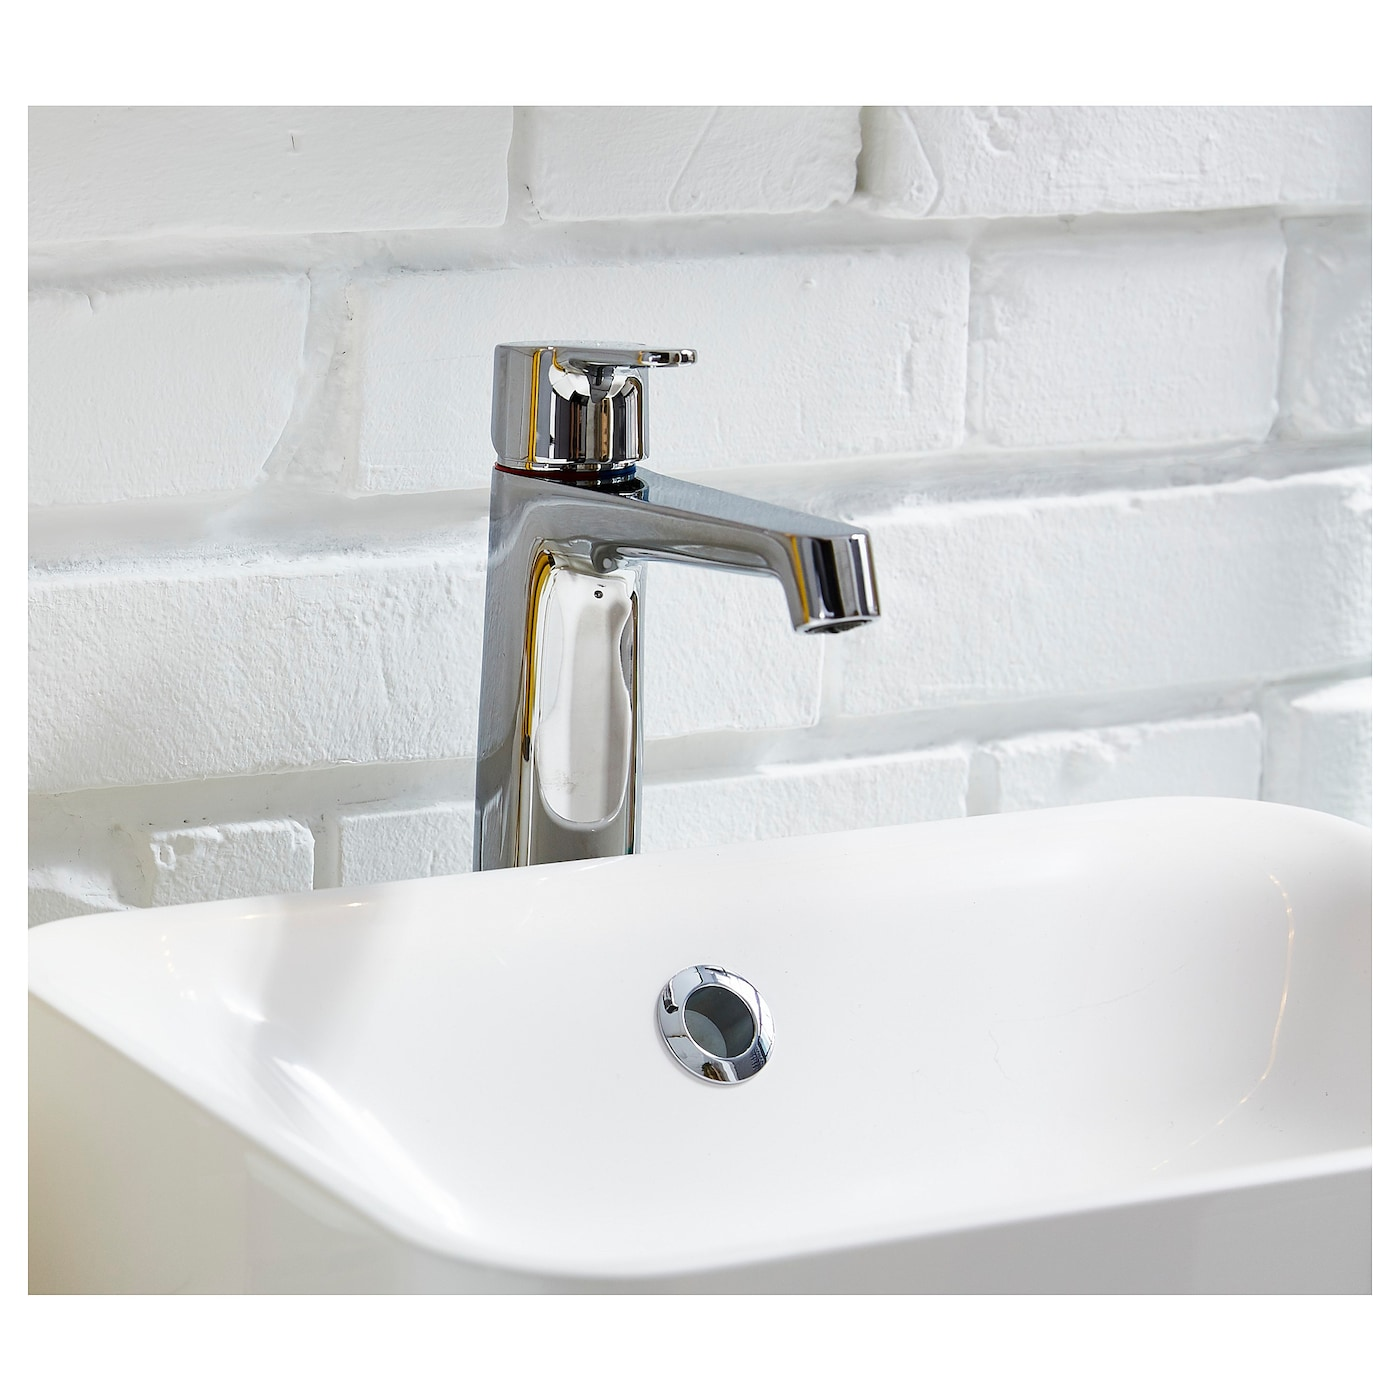 IKEA BROGRUND wash-basin mixer tap, tall